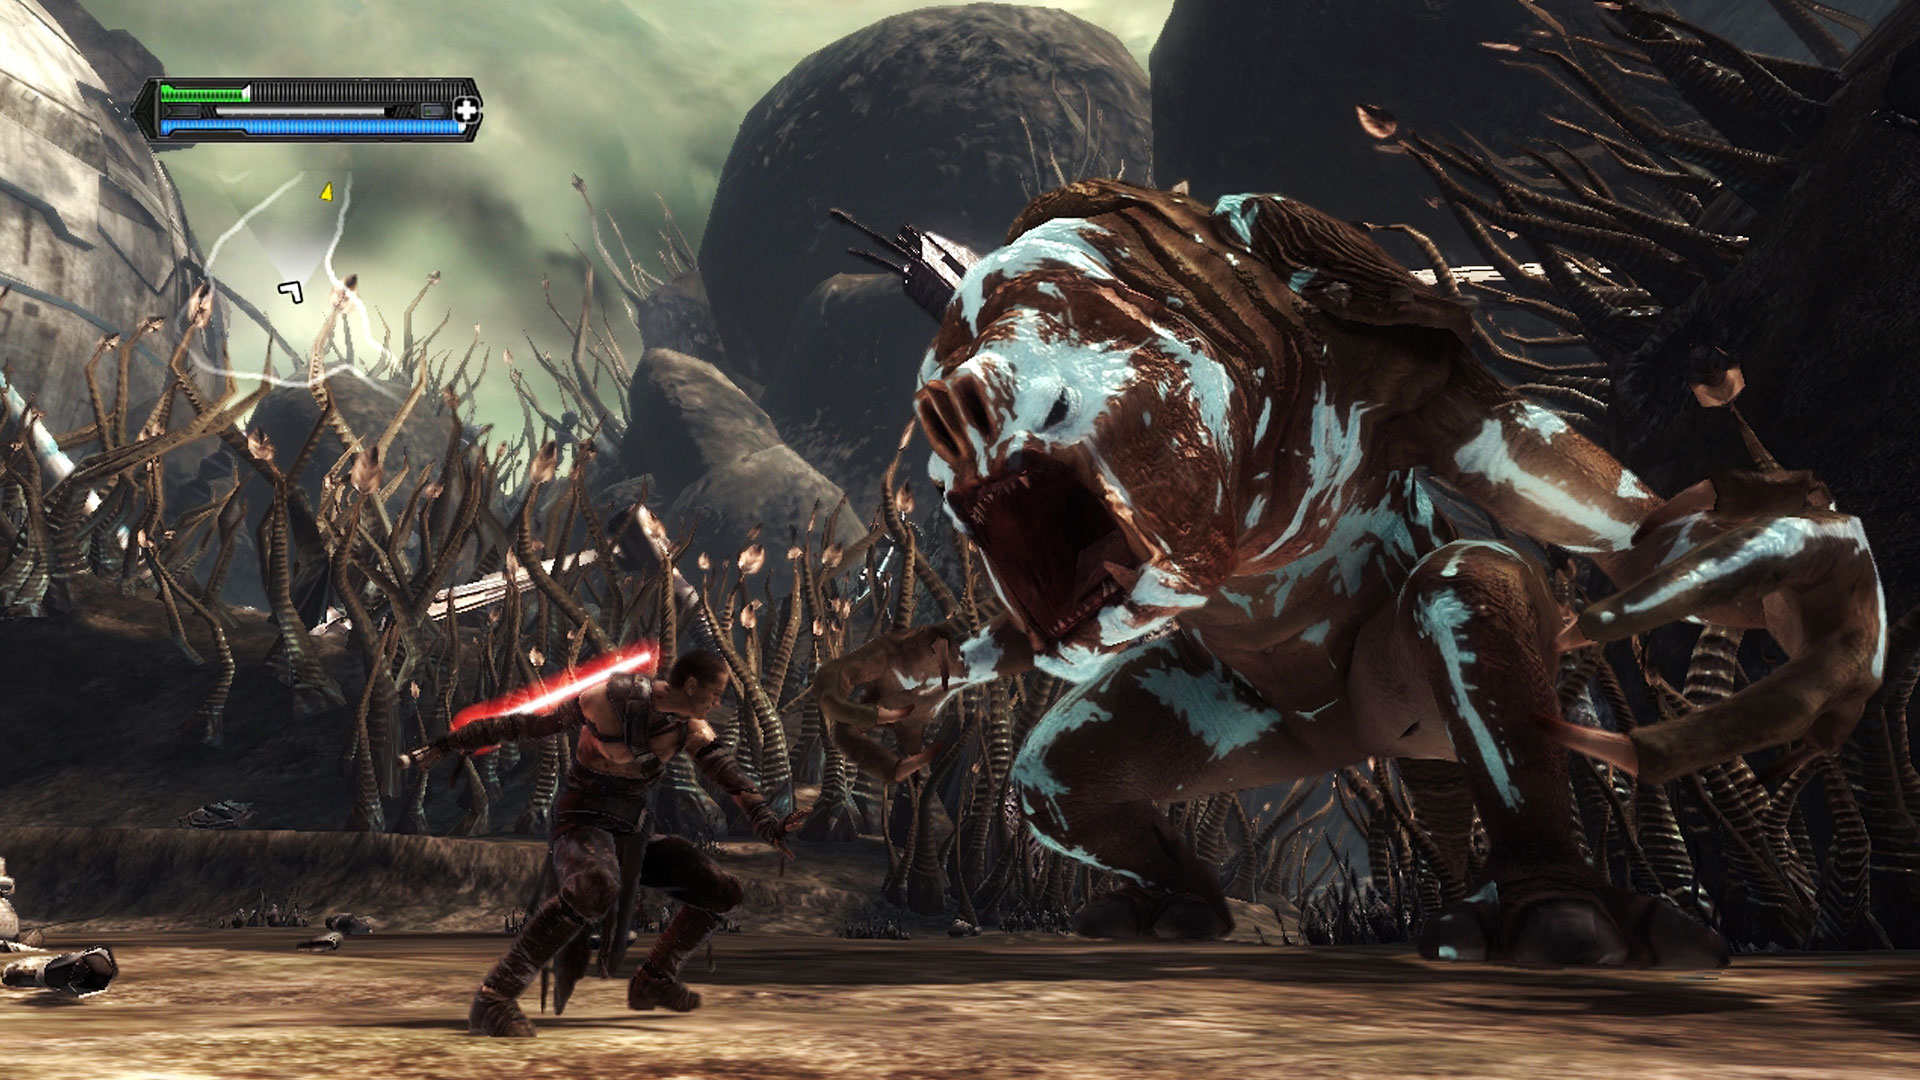 Quelle: Steam - STAR WARS: The Force Unleashed